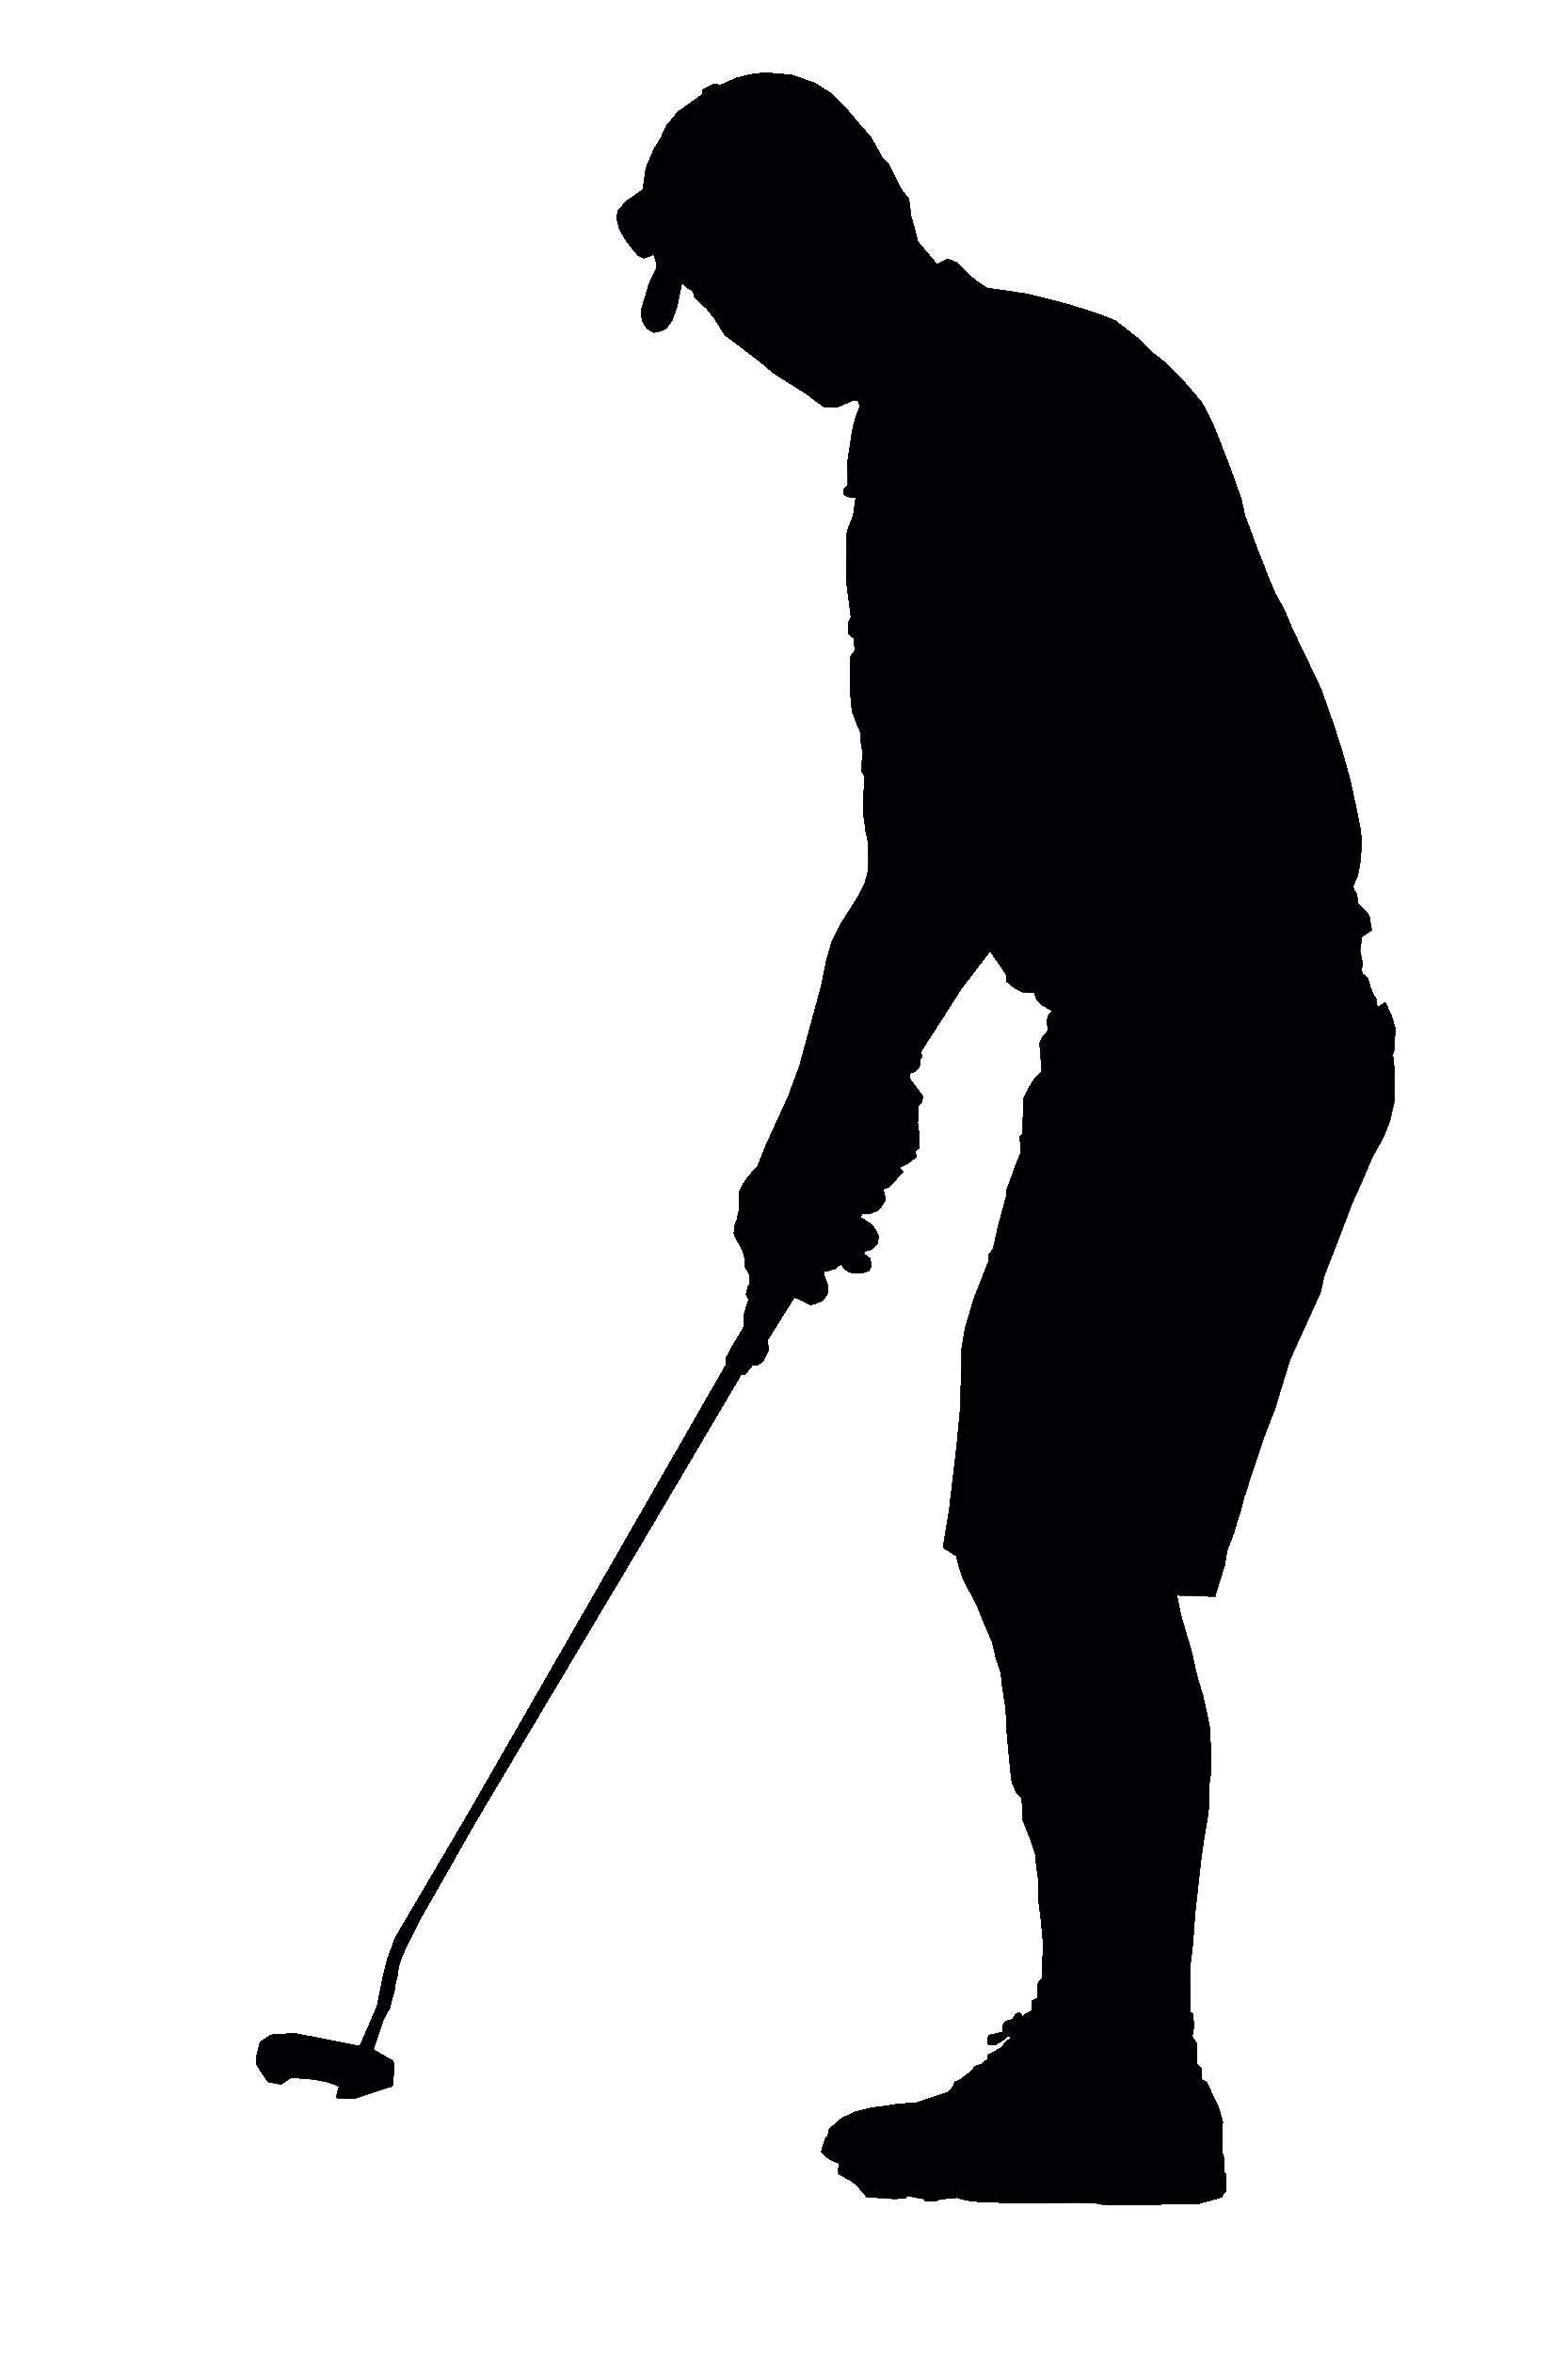 Golfer Black Silhouette Transparent Png Stickpng